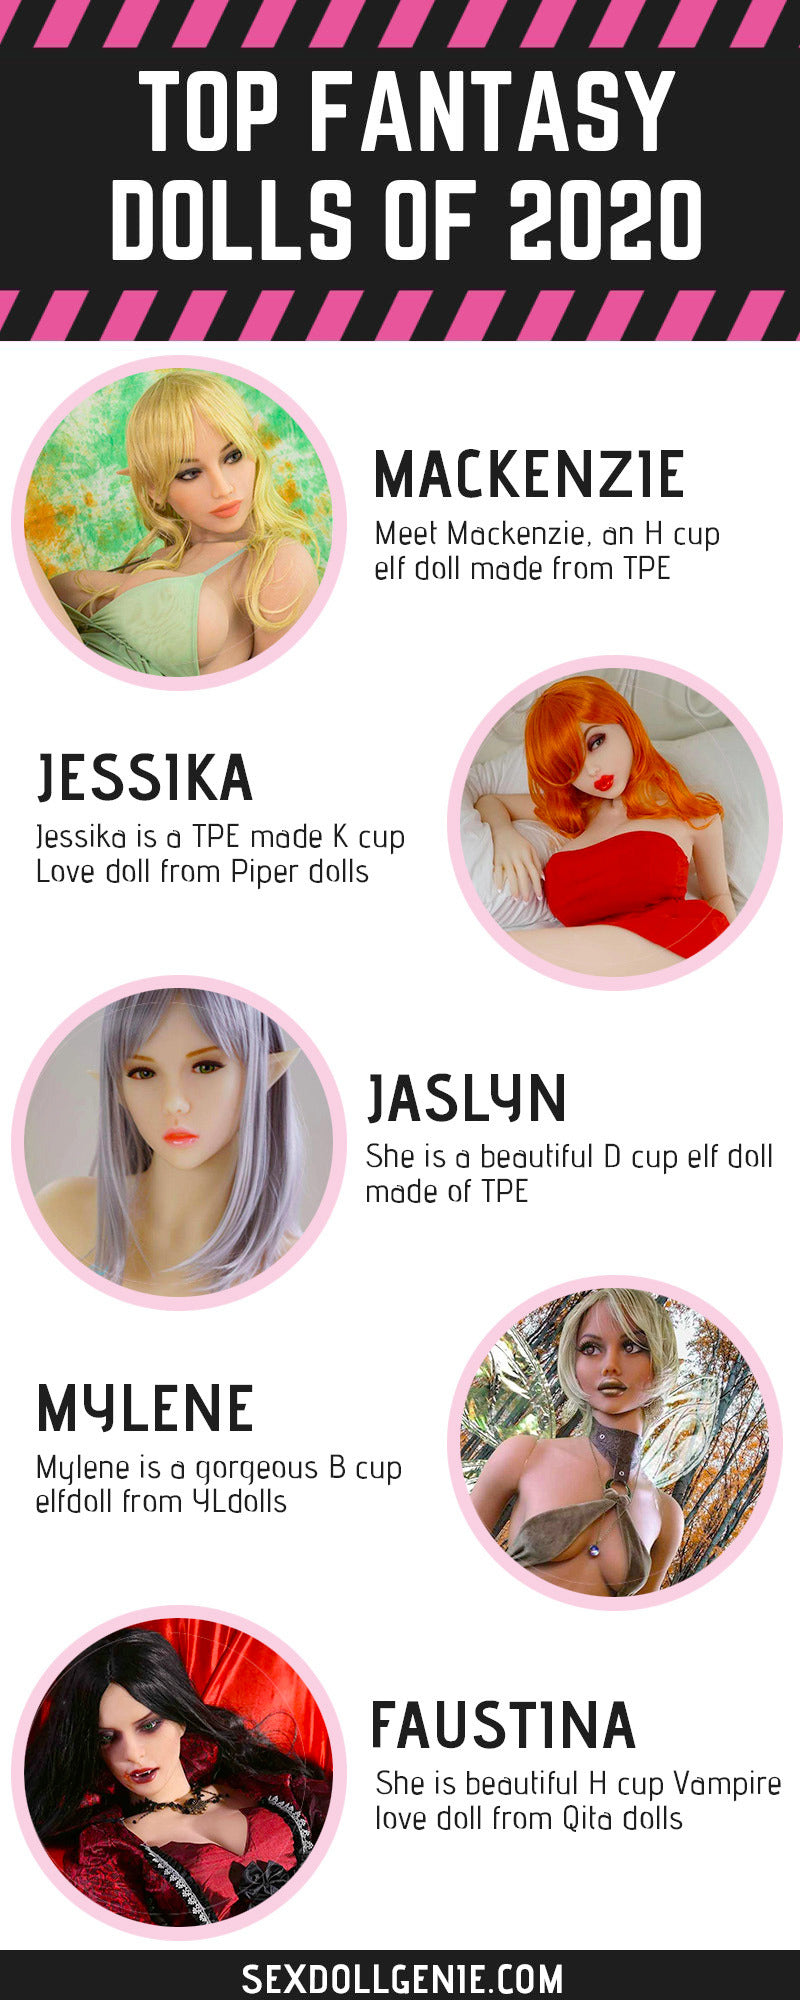 top fantasy sex dolls in 2020 - infographic